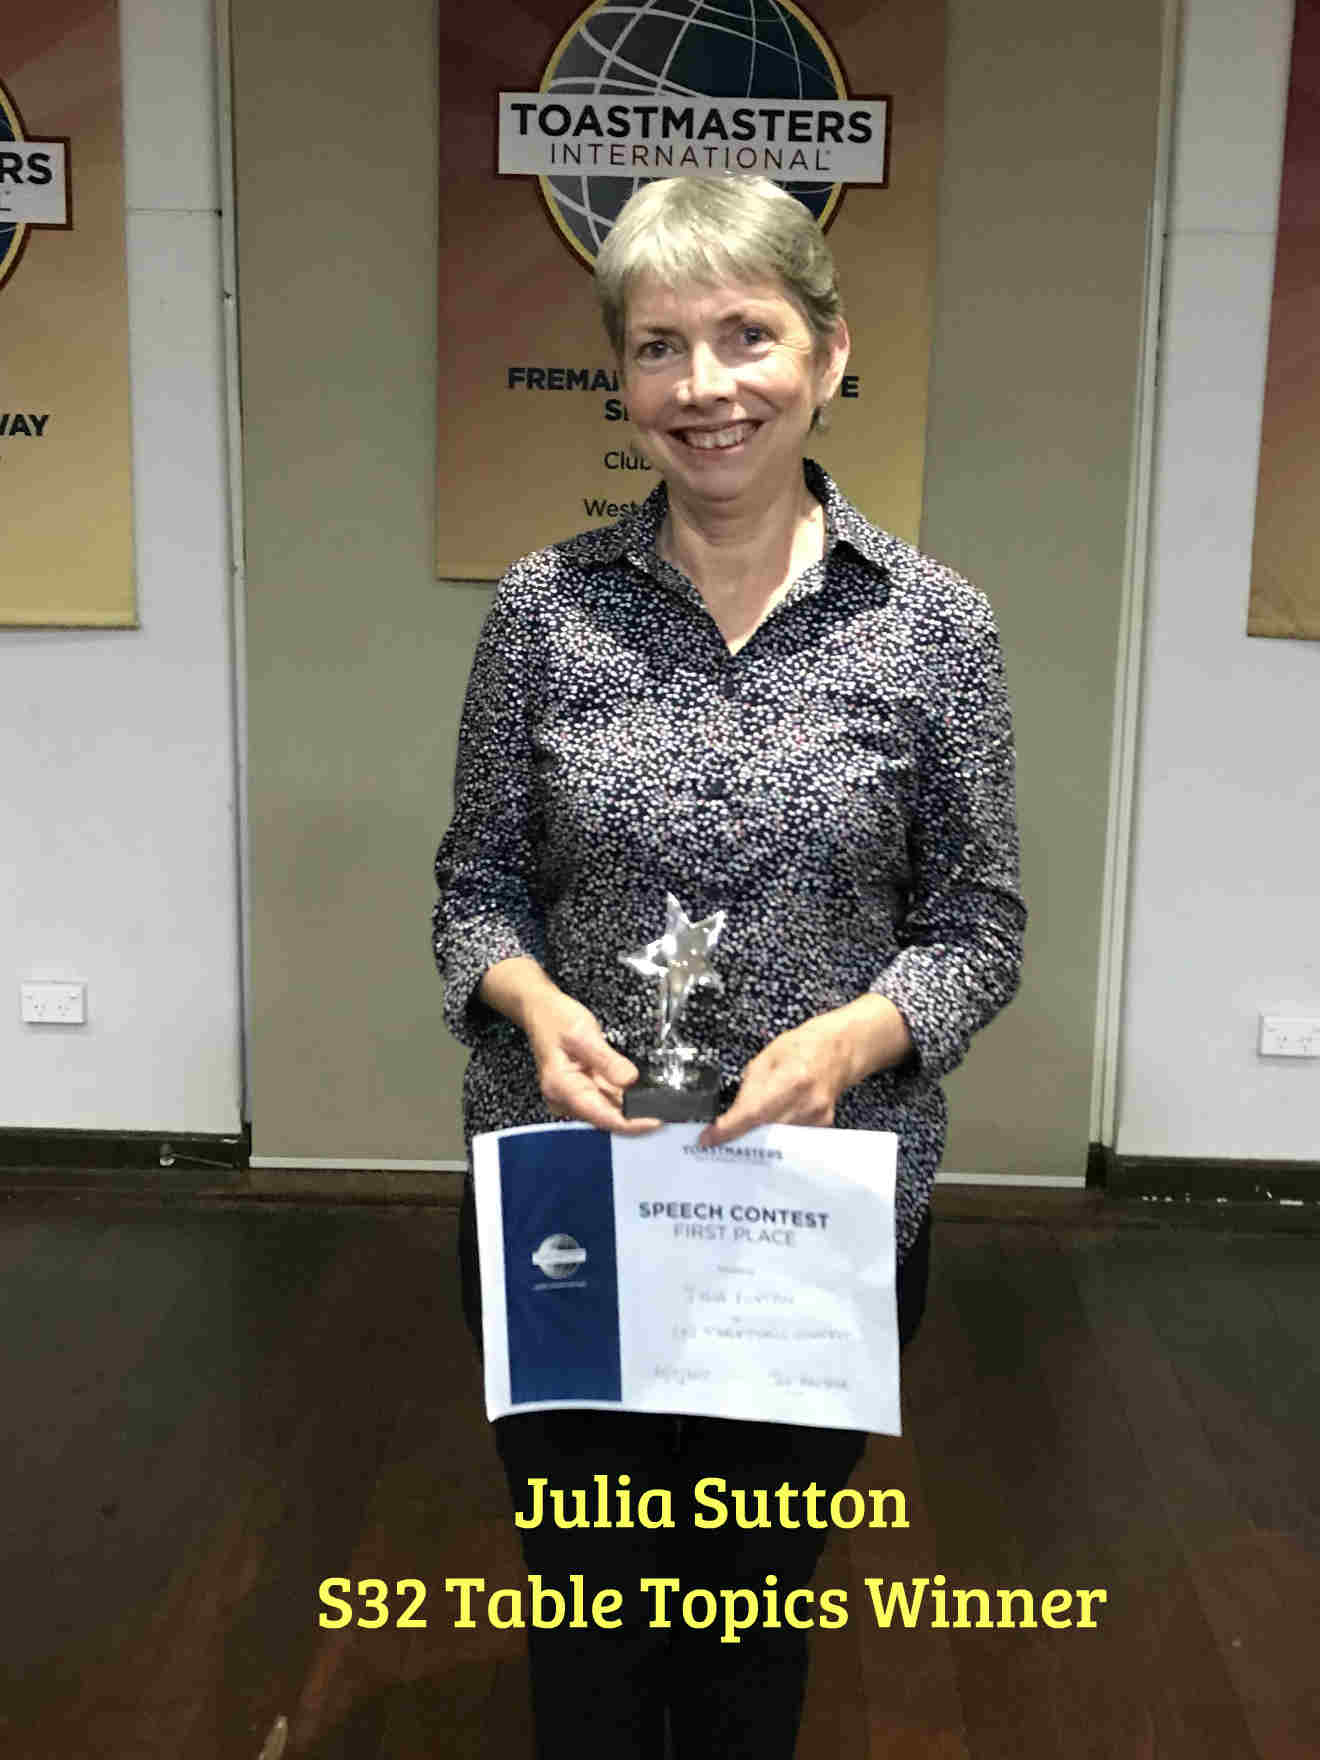 JuliaSutton-S32-TT-Contest-171023B